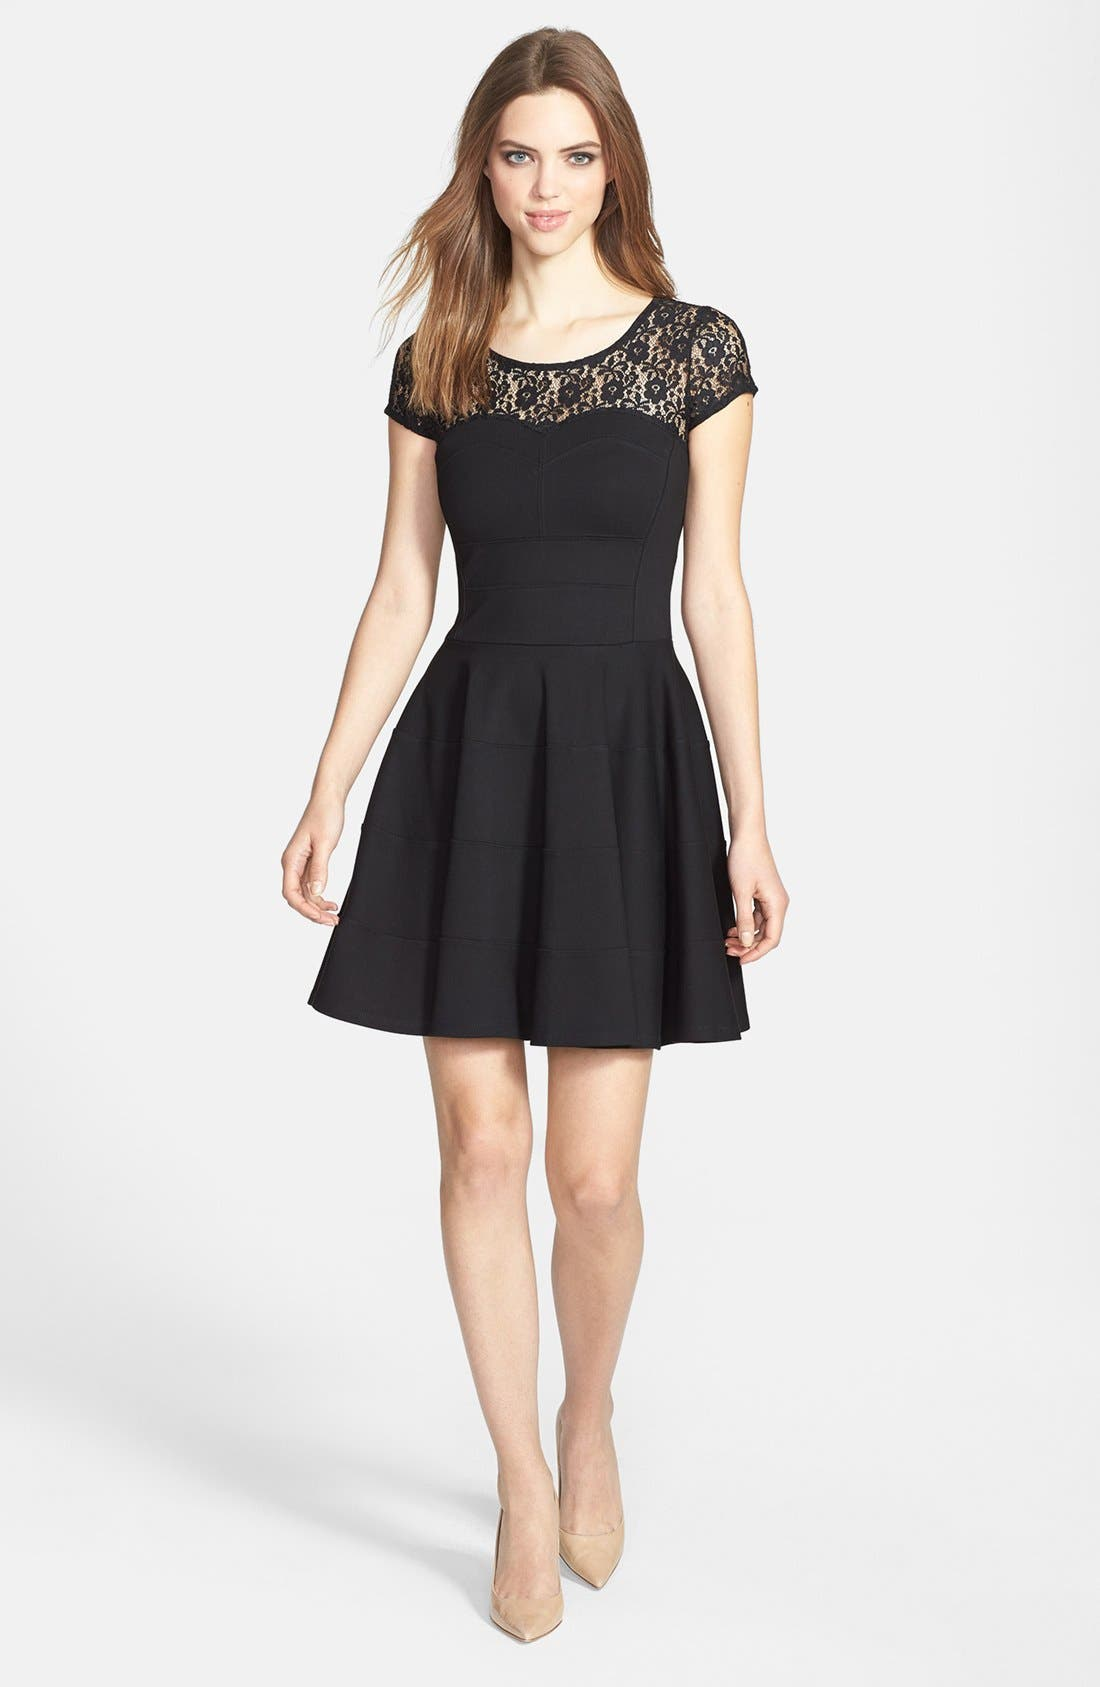 Alternate Image 1 Selected - Felicity & Coco Lace Yoke Fit & Flare Ponte Dress (Petite) (Nordstrom Exclusive)